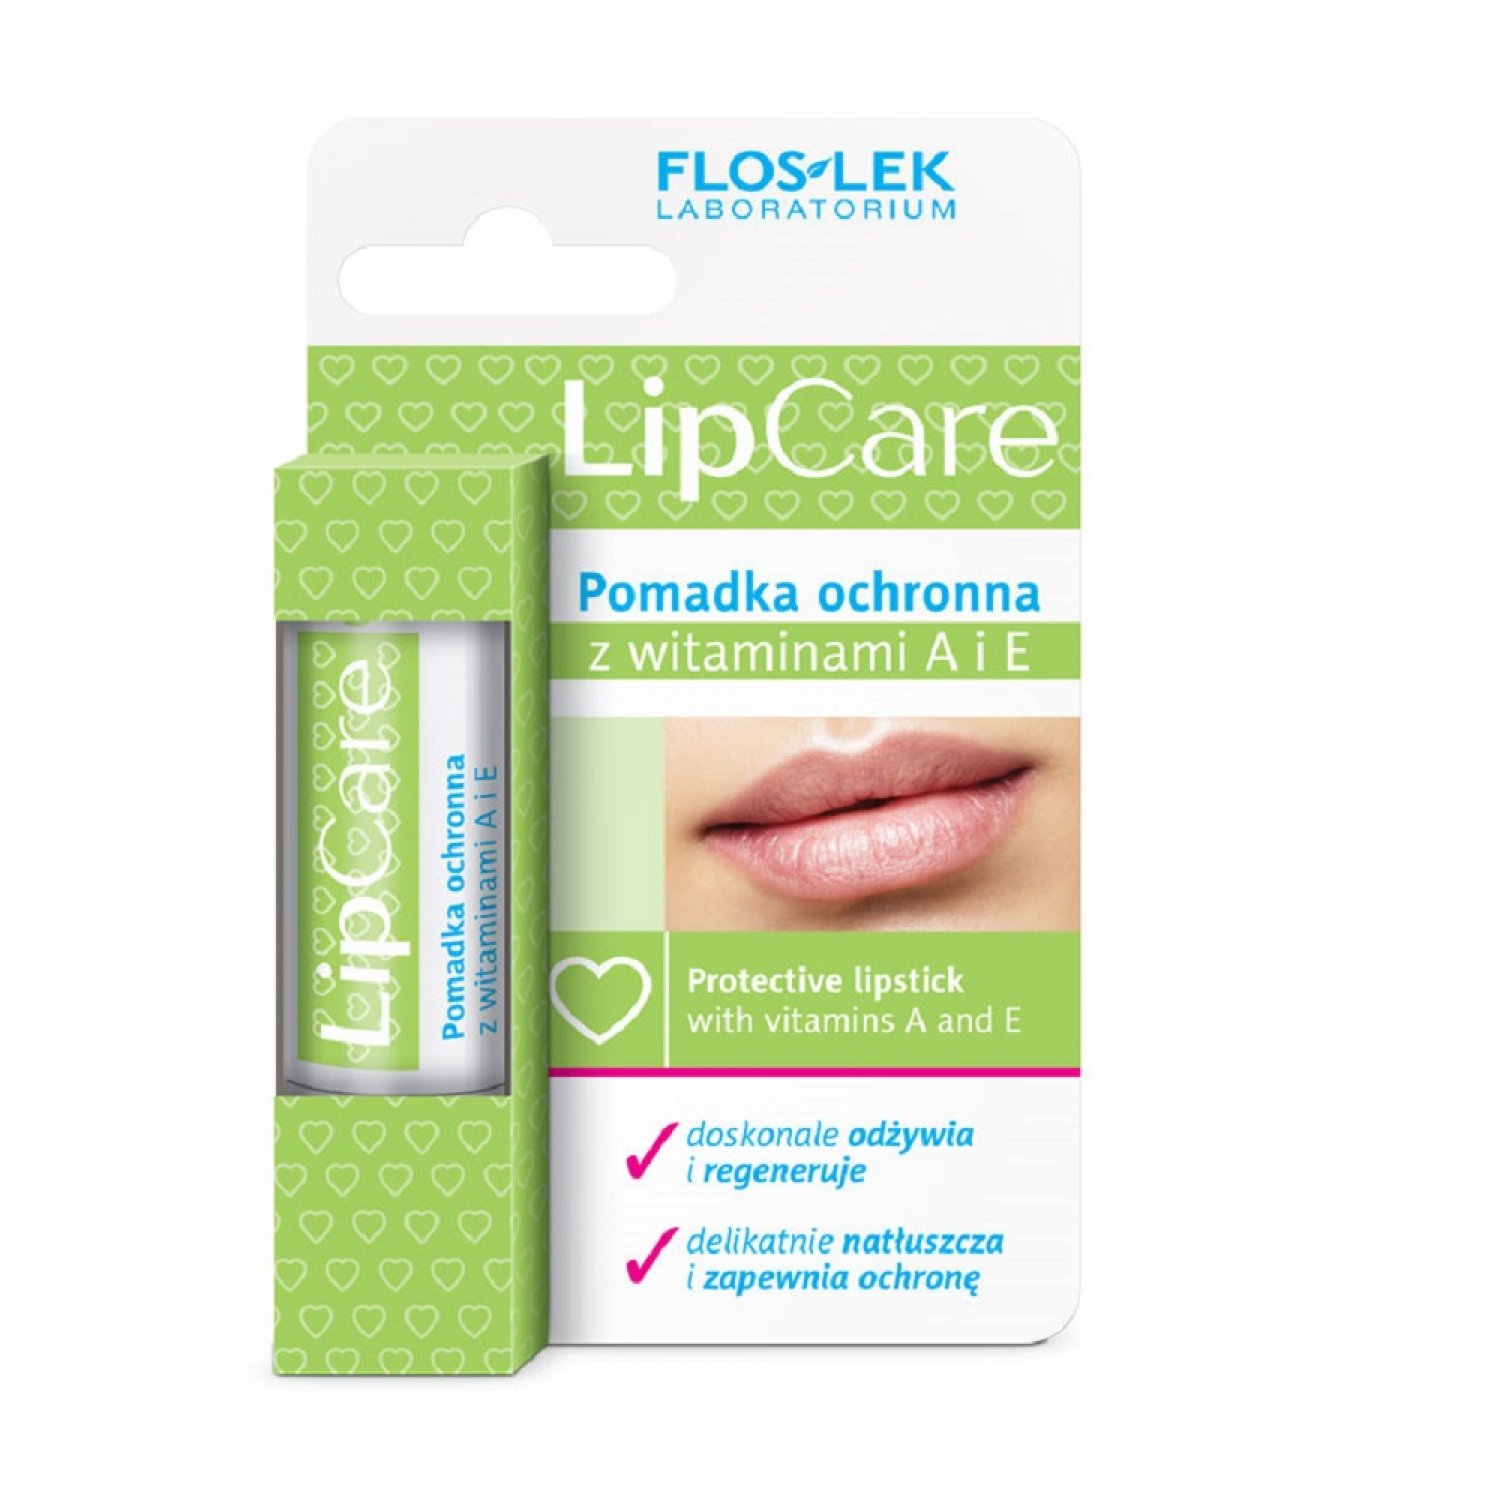 floslek-eye-protective-lipstick-with-vitamins-a-and-e